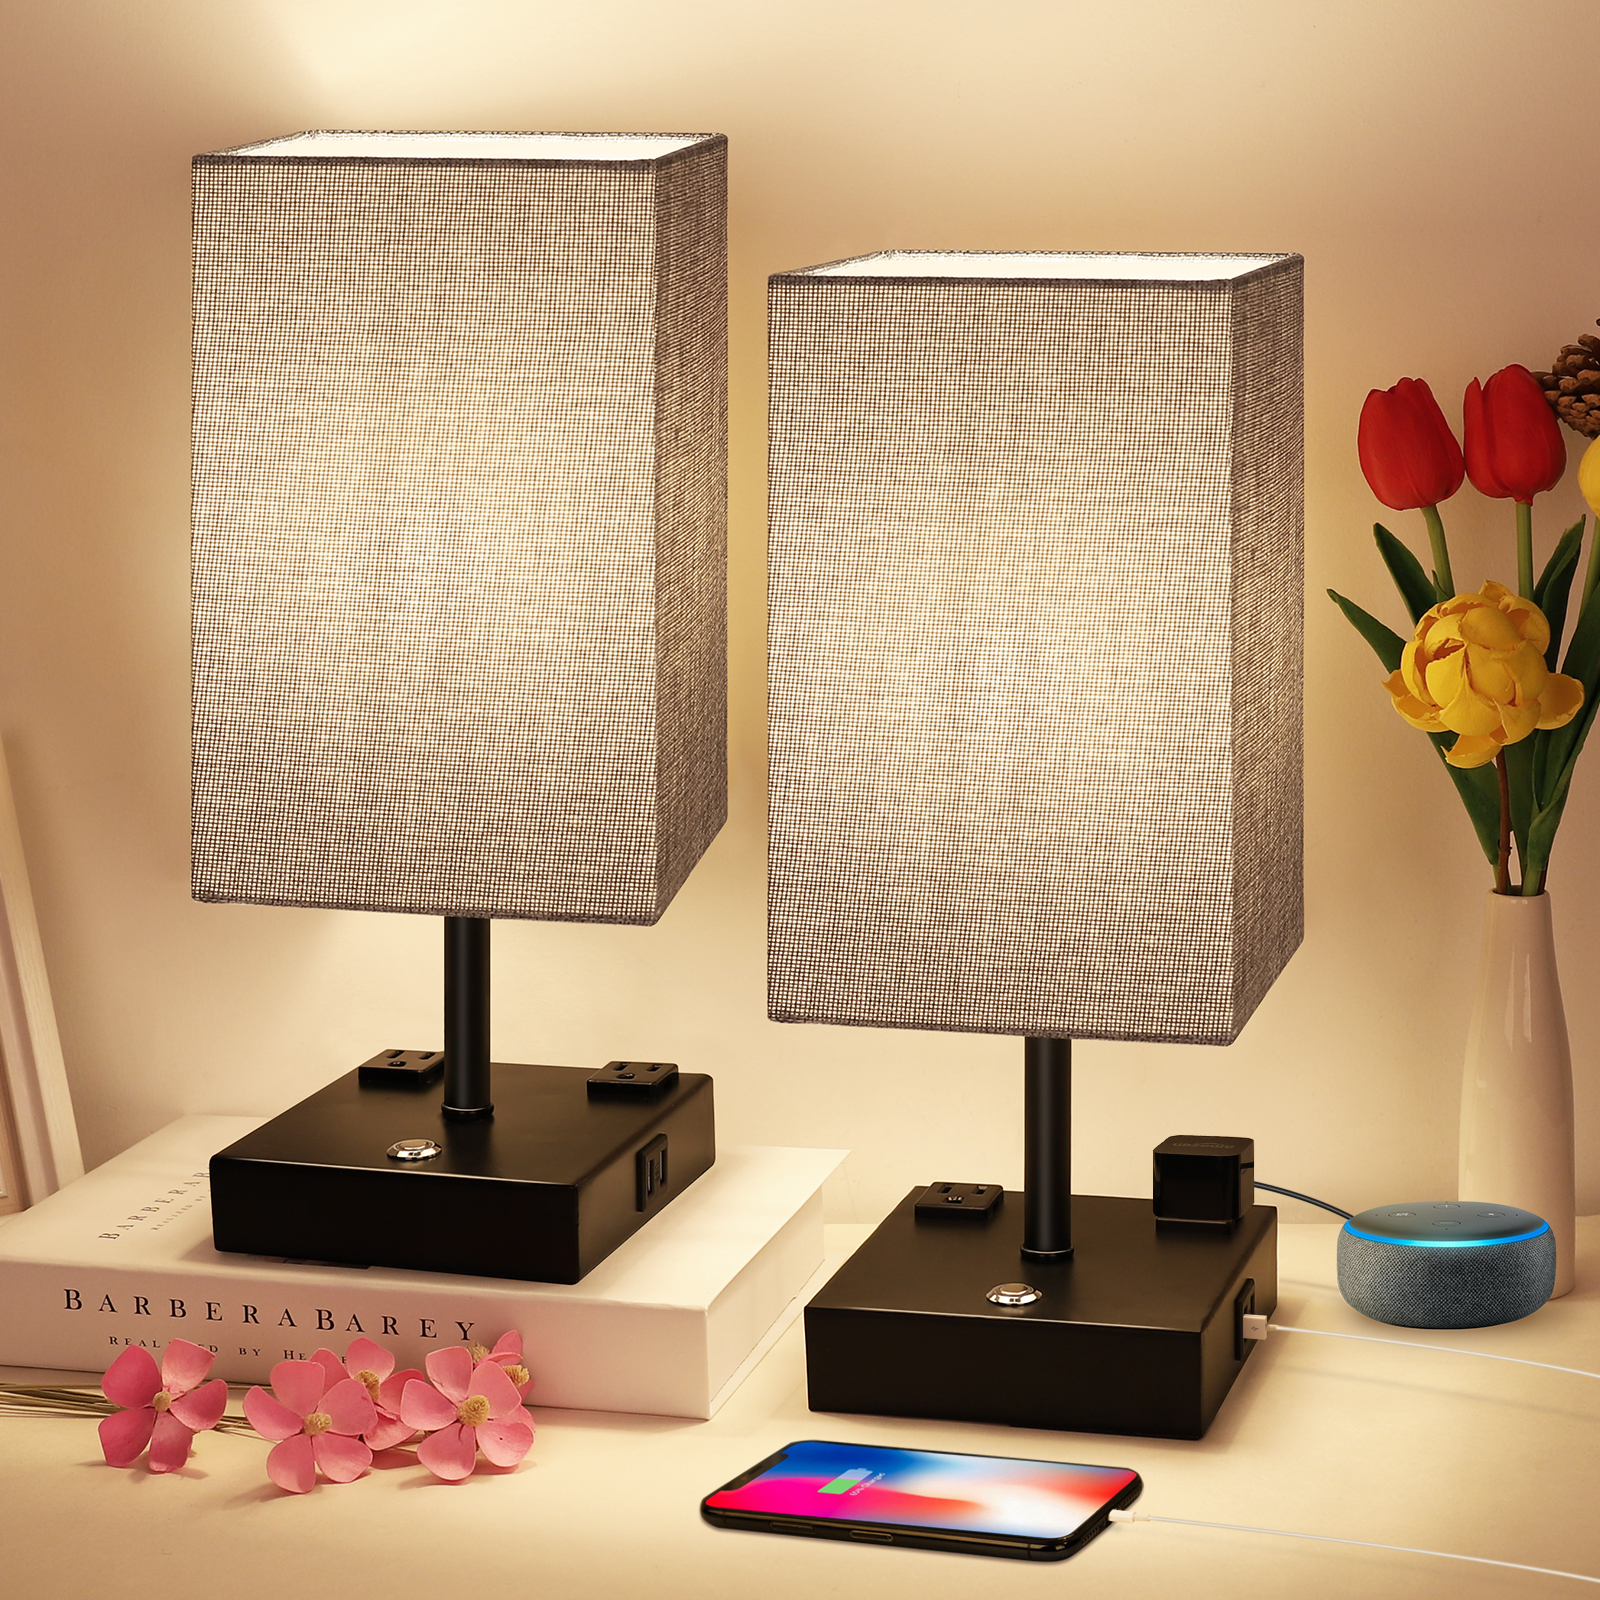 Dimmable Table Lamp Touch Control with USB Charging Ports and AC Outlets